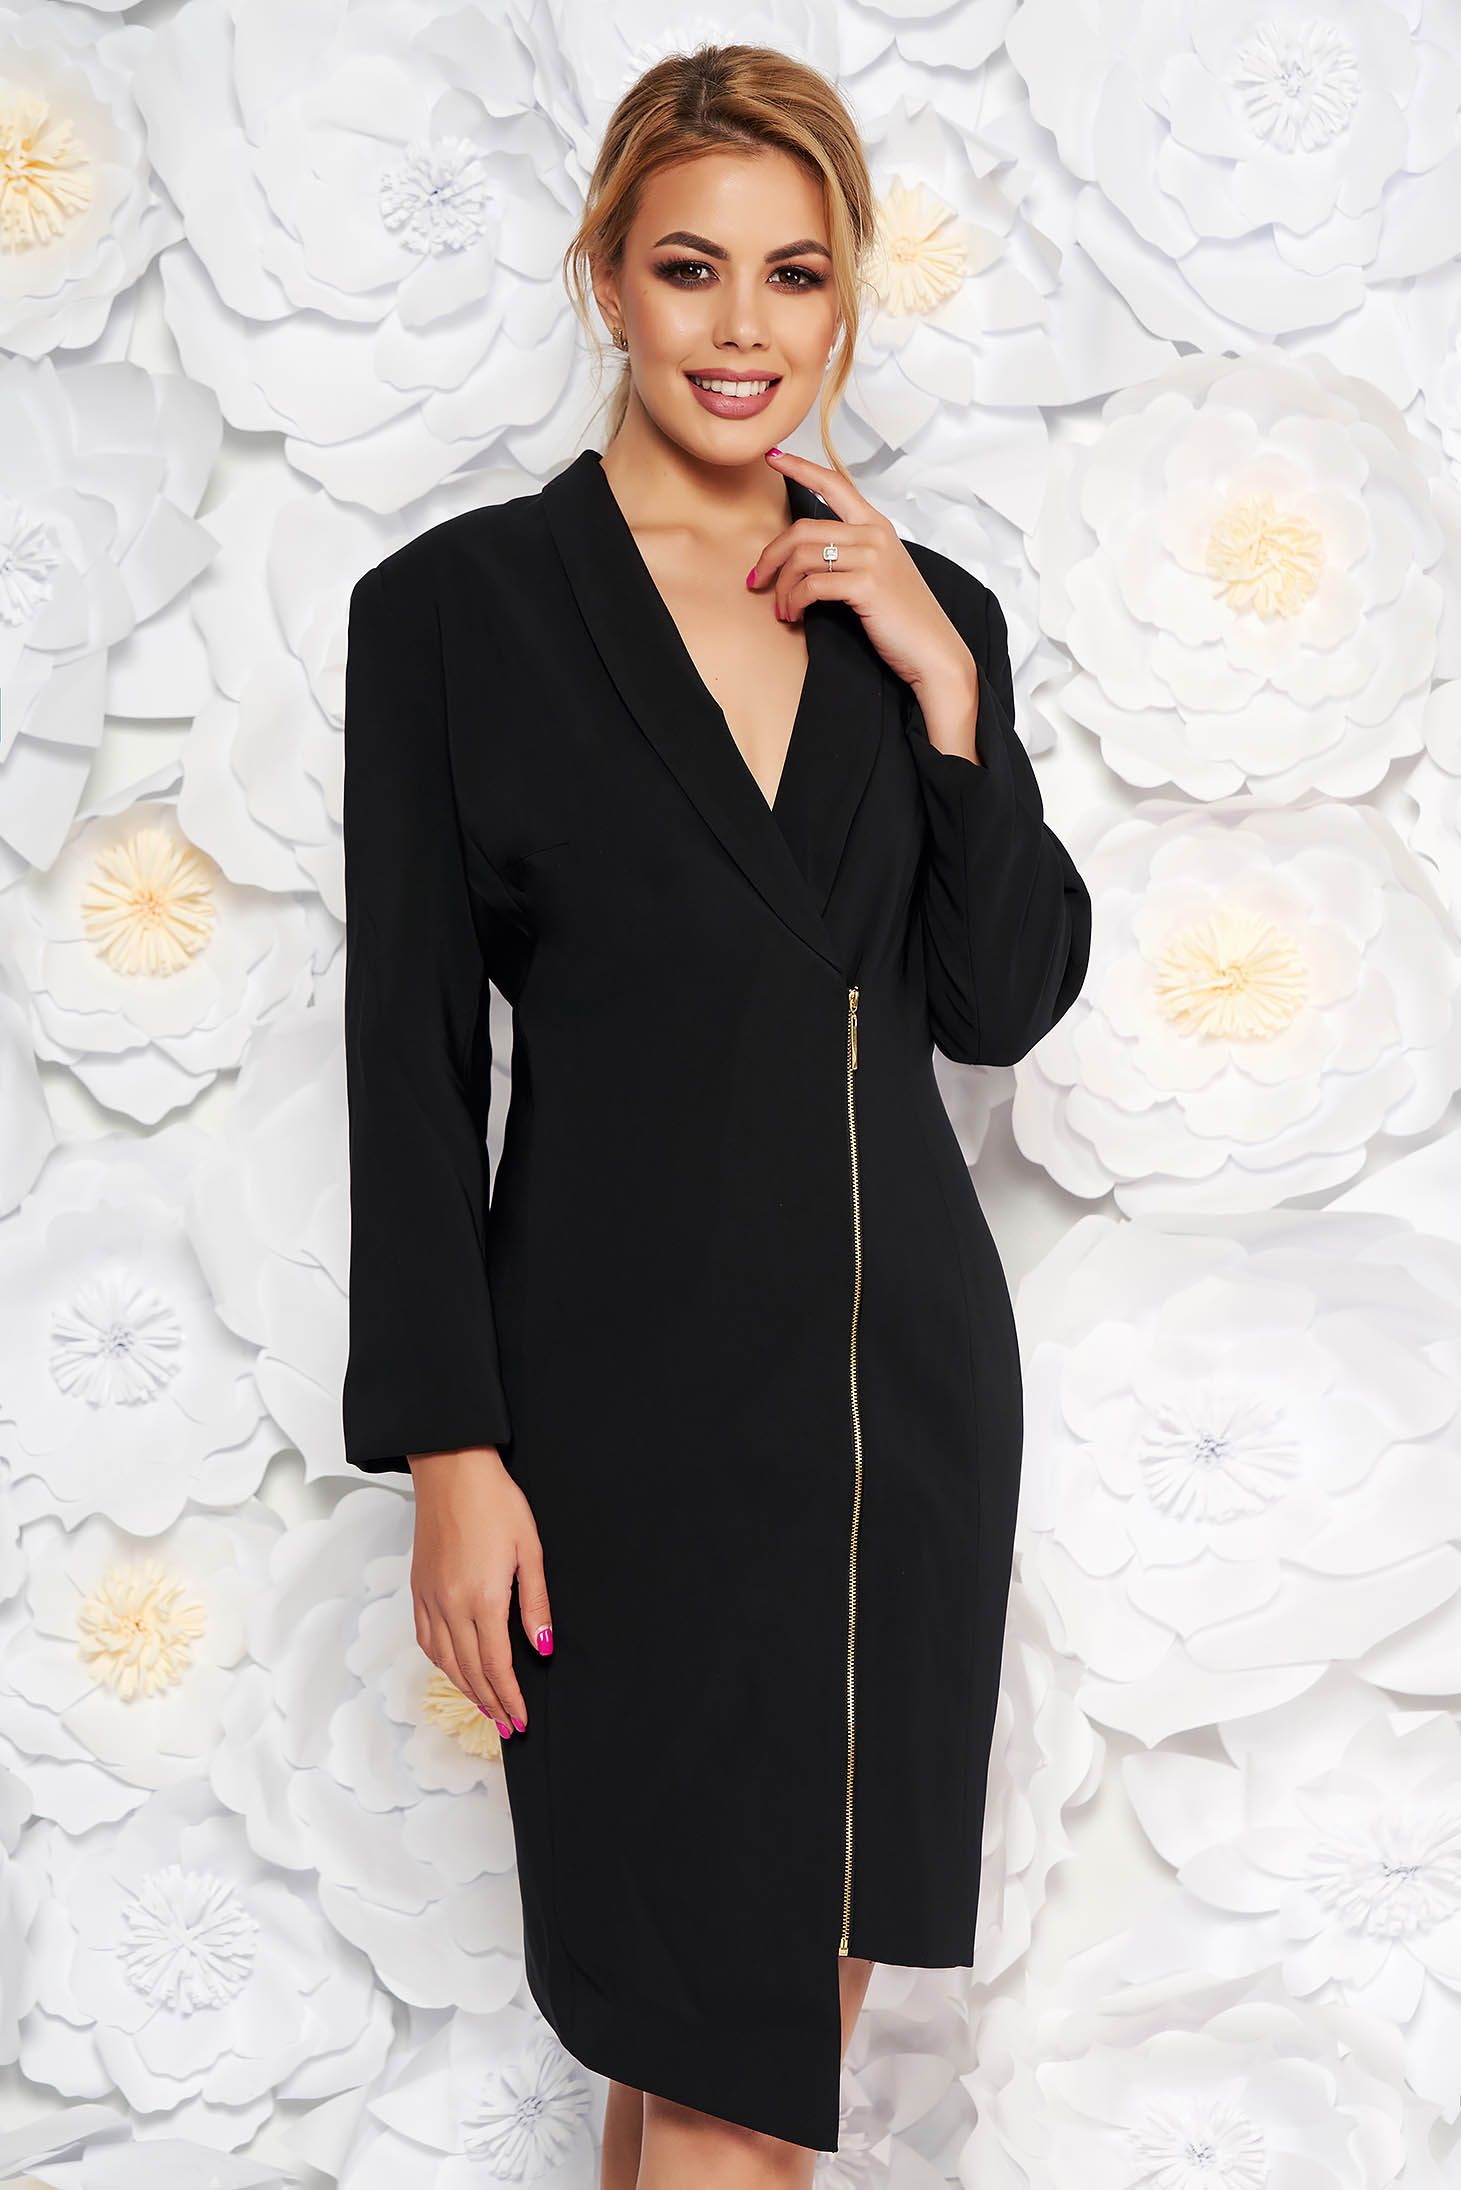 LaDonna black elegant blazer type dress from non elastic fabric with inside lining long sleeved